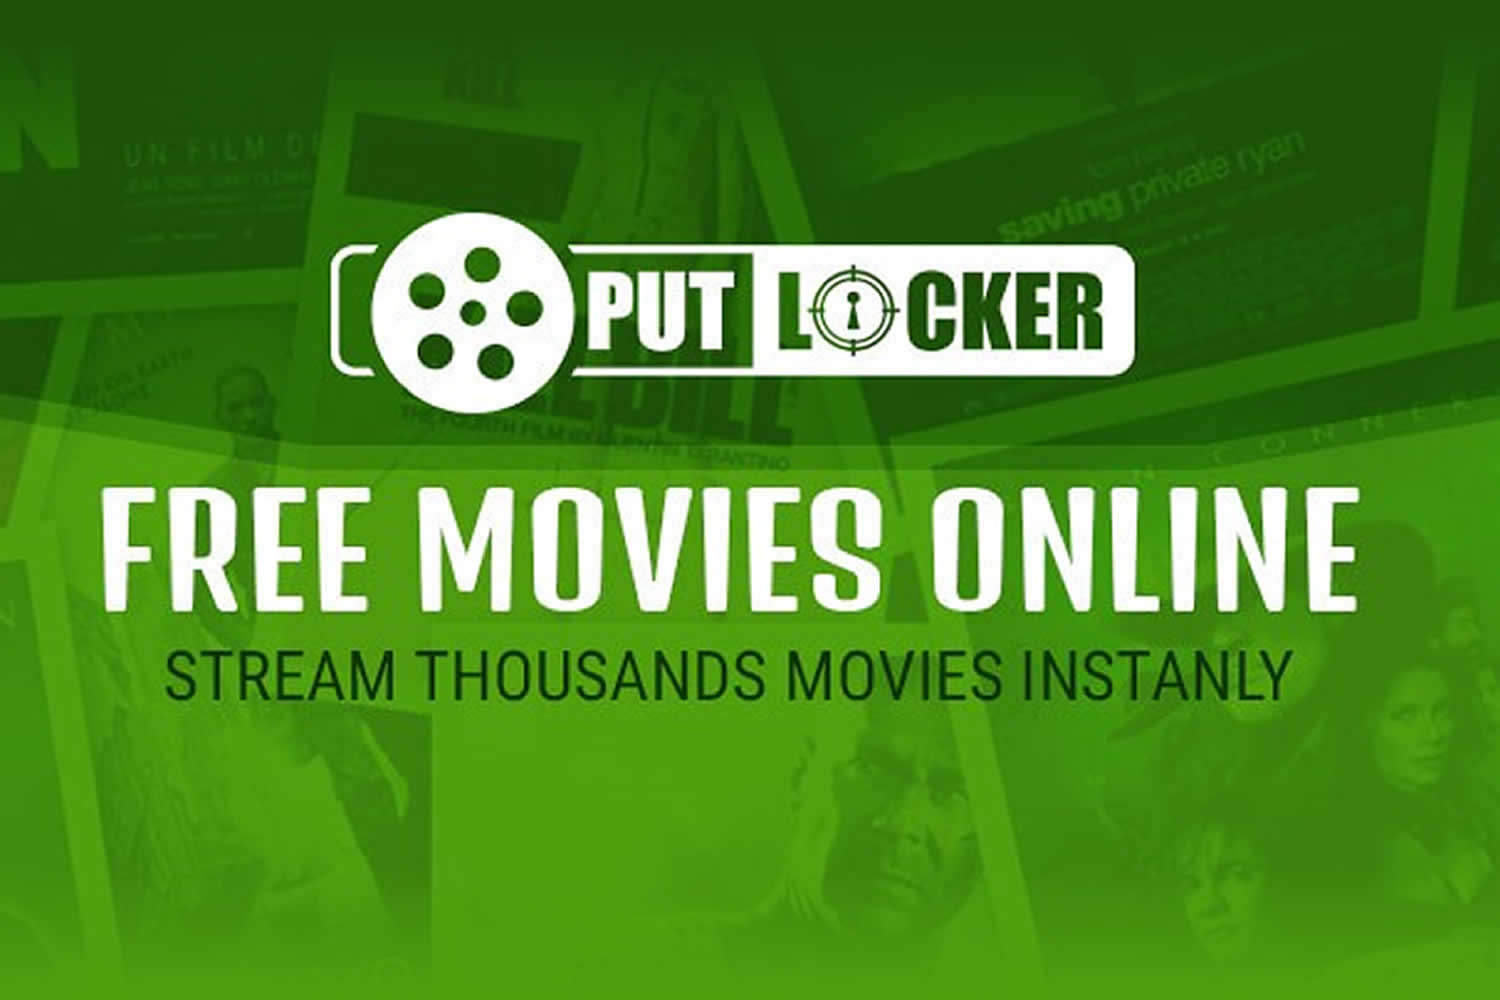 Watch Bout de chou Putlocker Movies